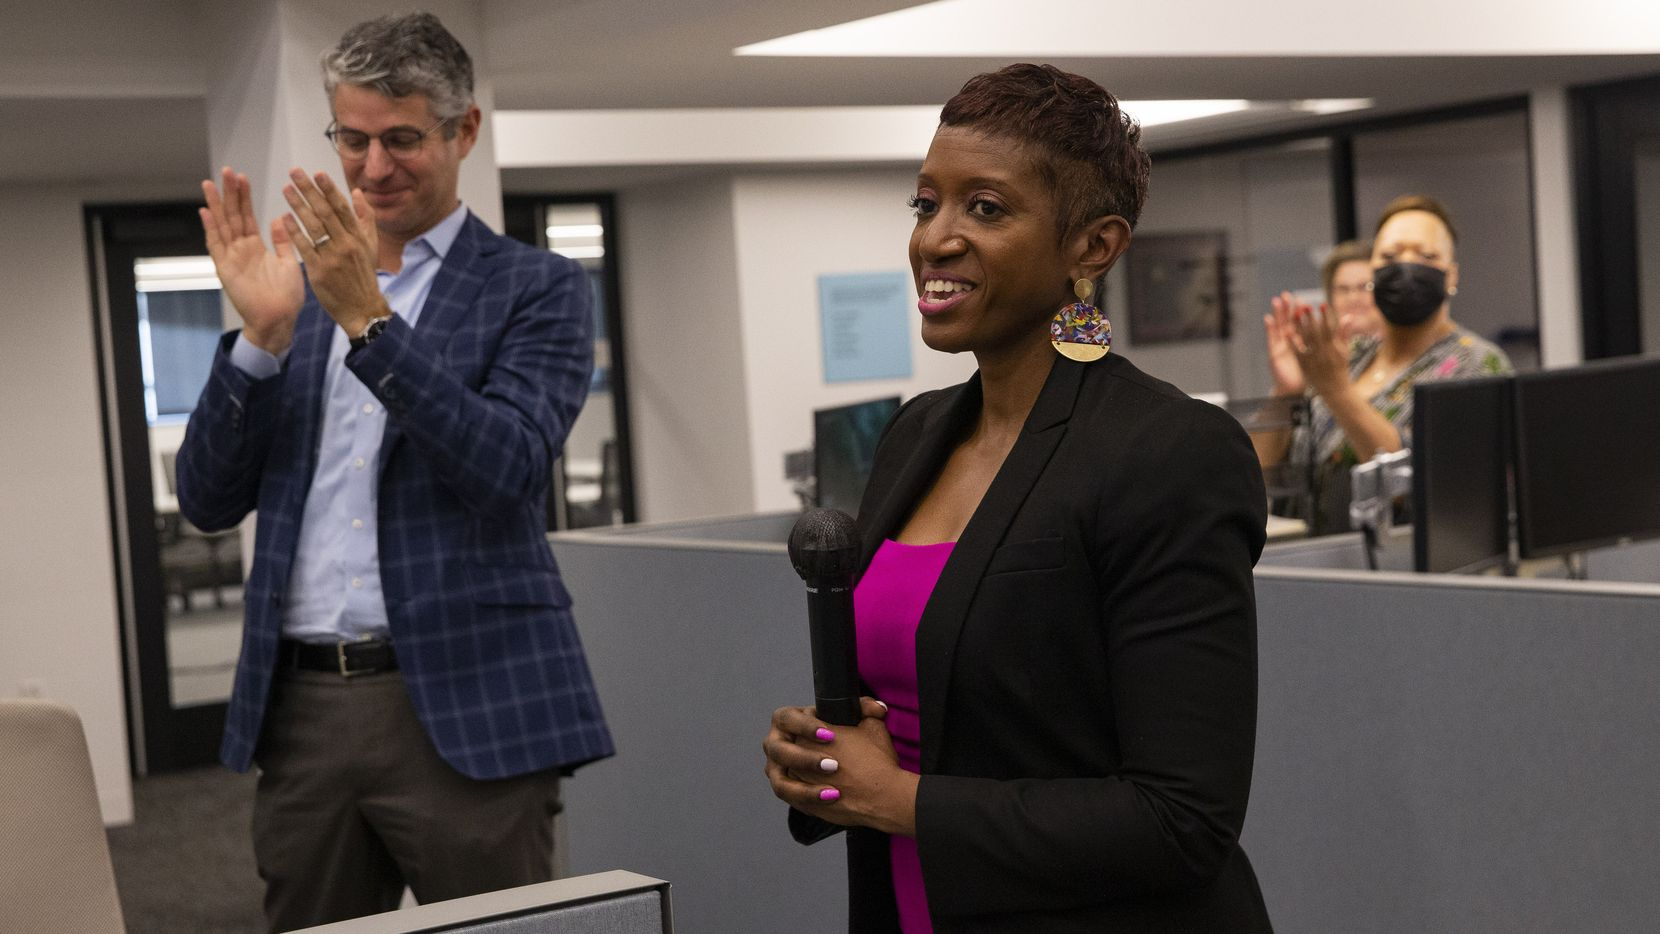 Publisher Grant Moise (left) claps after The Dallas Morning News' new executive editor, Katrice Hardy, spoke with the newsroom staff after being introduced on Wednesday, July 21, 2021, at in Dallas. (Juan Figueroa/The Dallas Morning News)